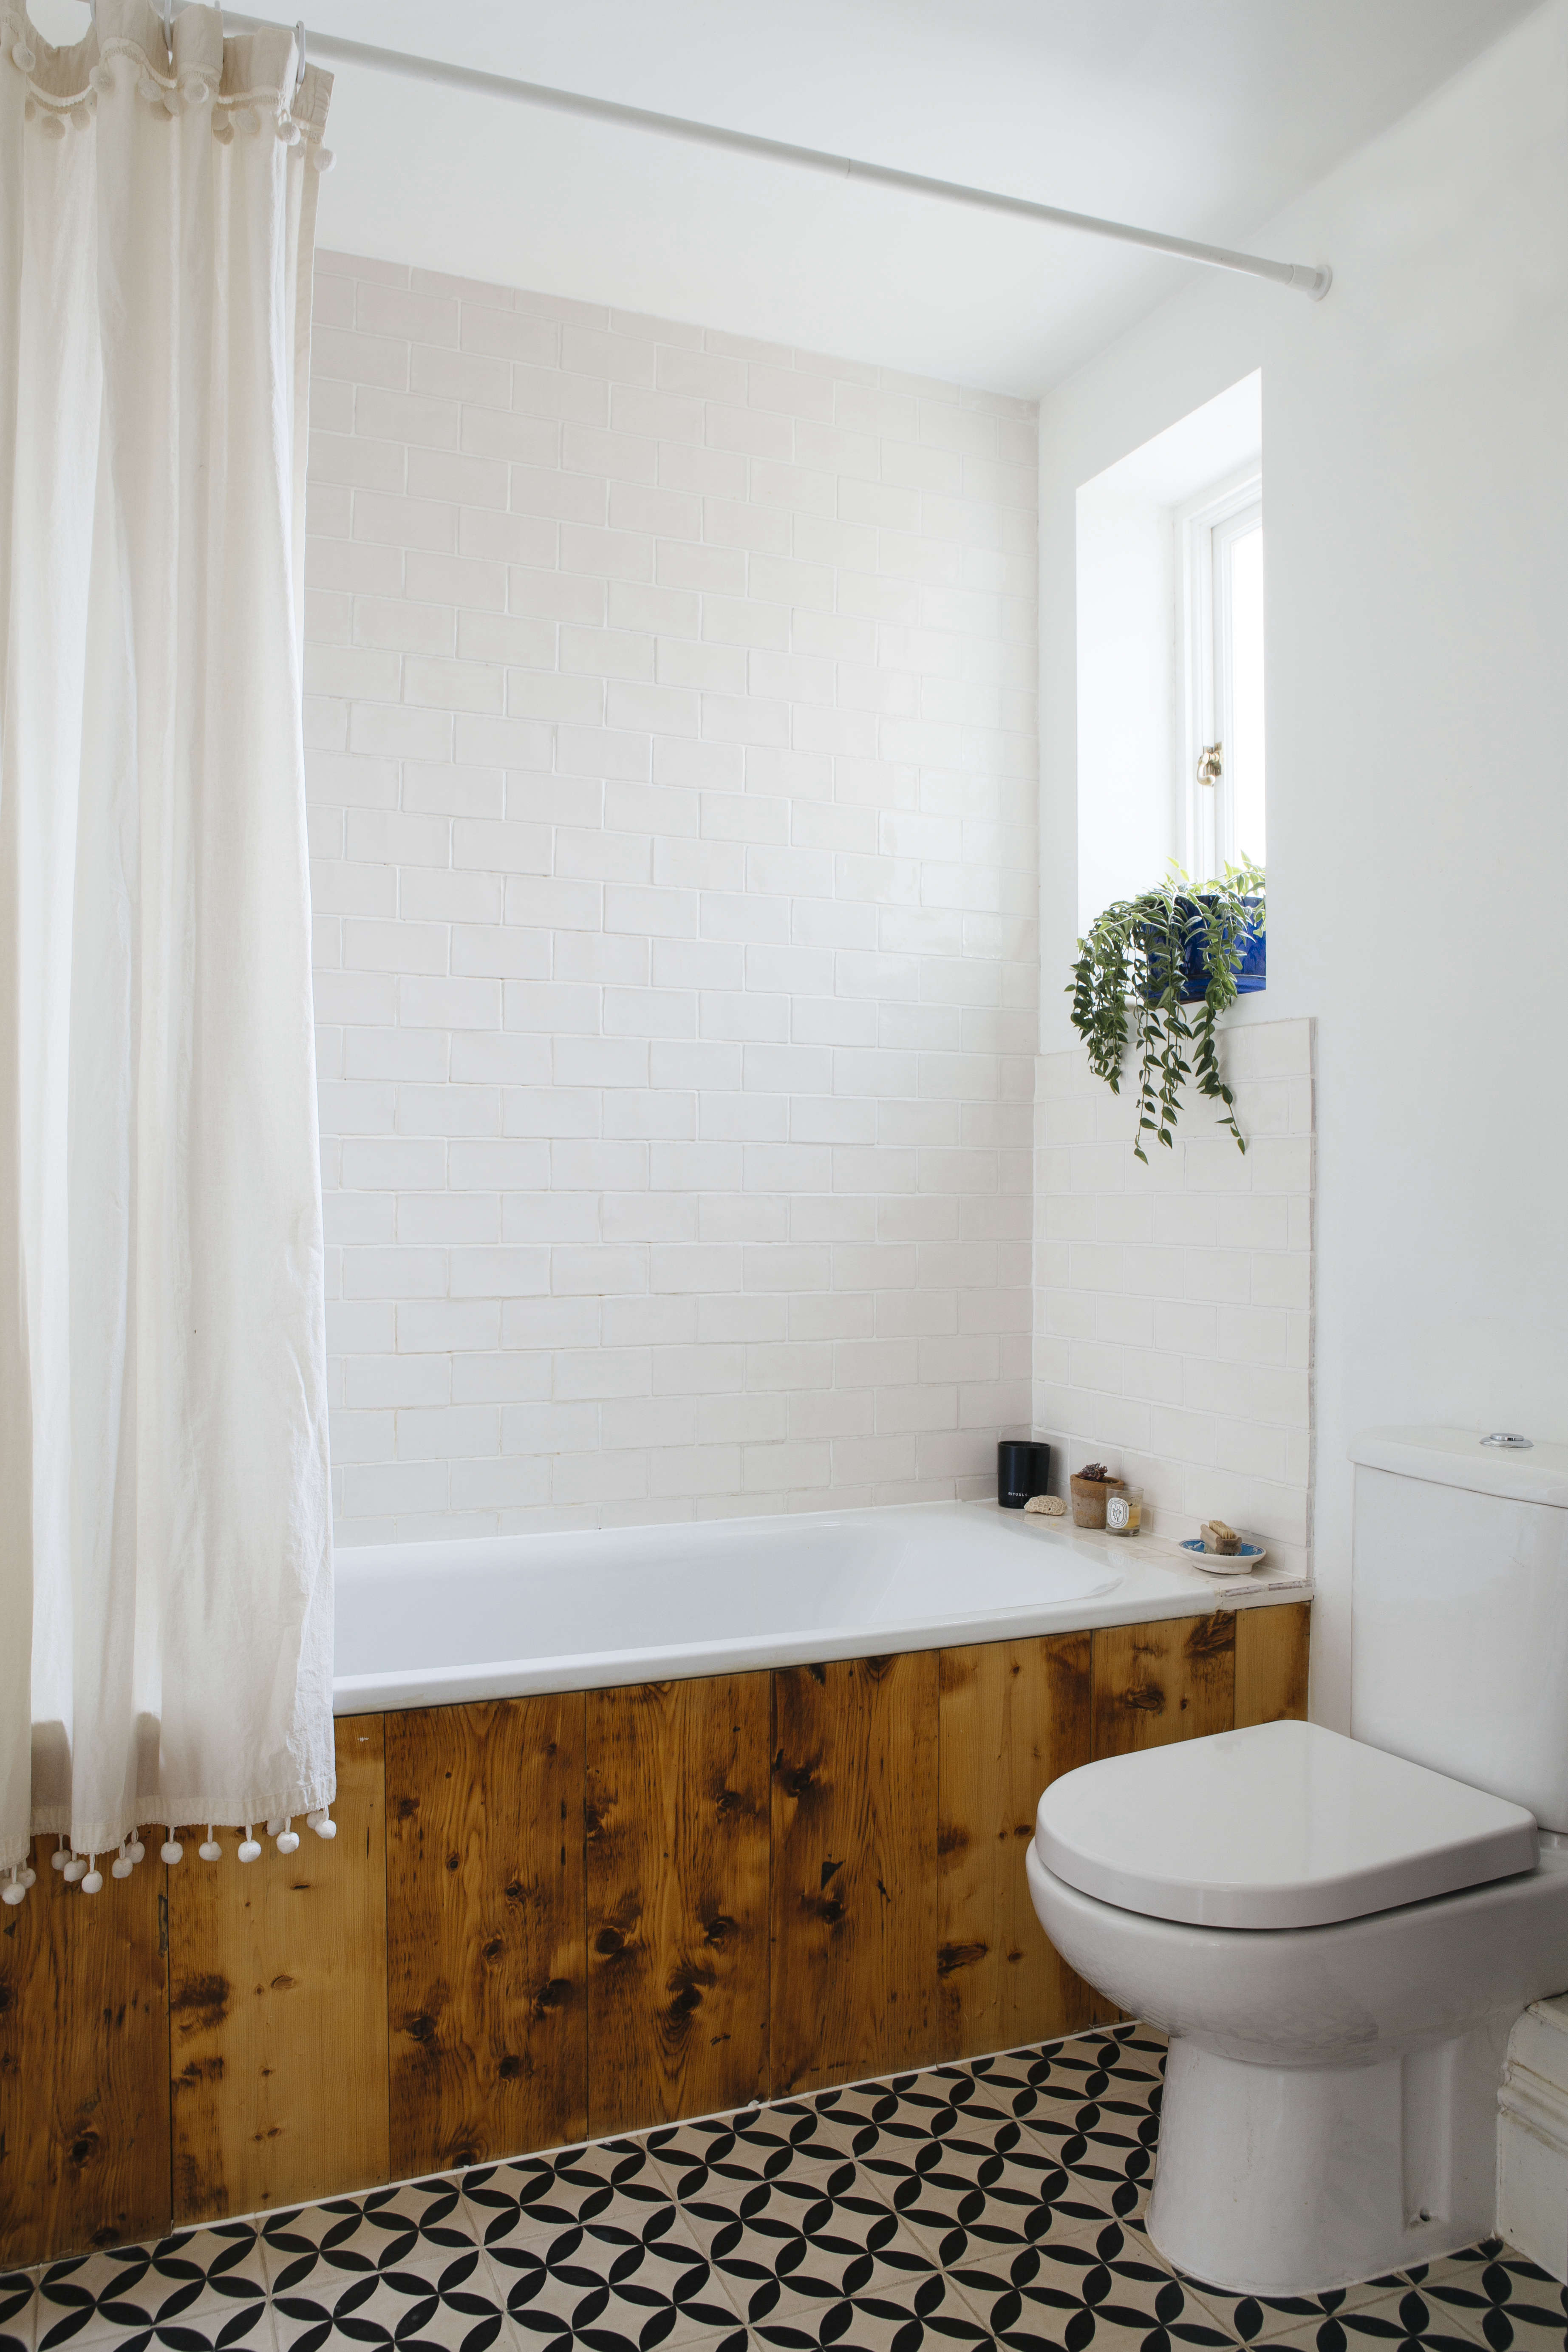 Ash moved a wall in the bathroom to create more space in the spare roomand a built-in laundry cupboard in the hallway. The bath, where Ash carefully does all of her own indigo dying, has been paneled with the same reclaimed wood as the floor. (&#8